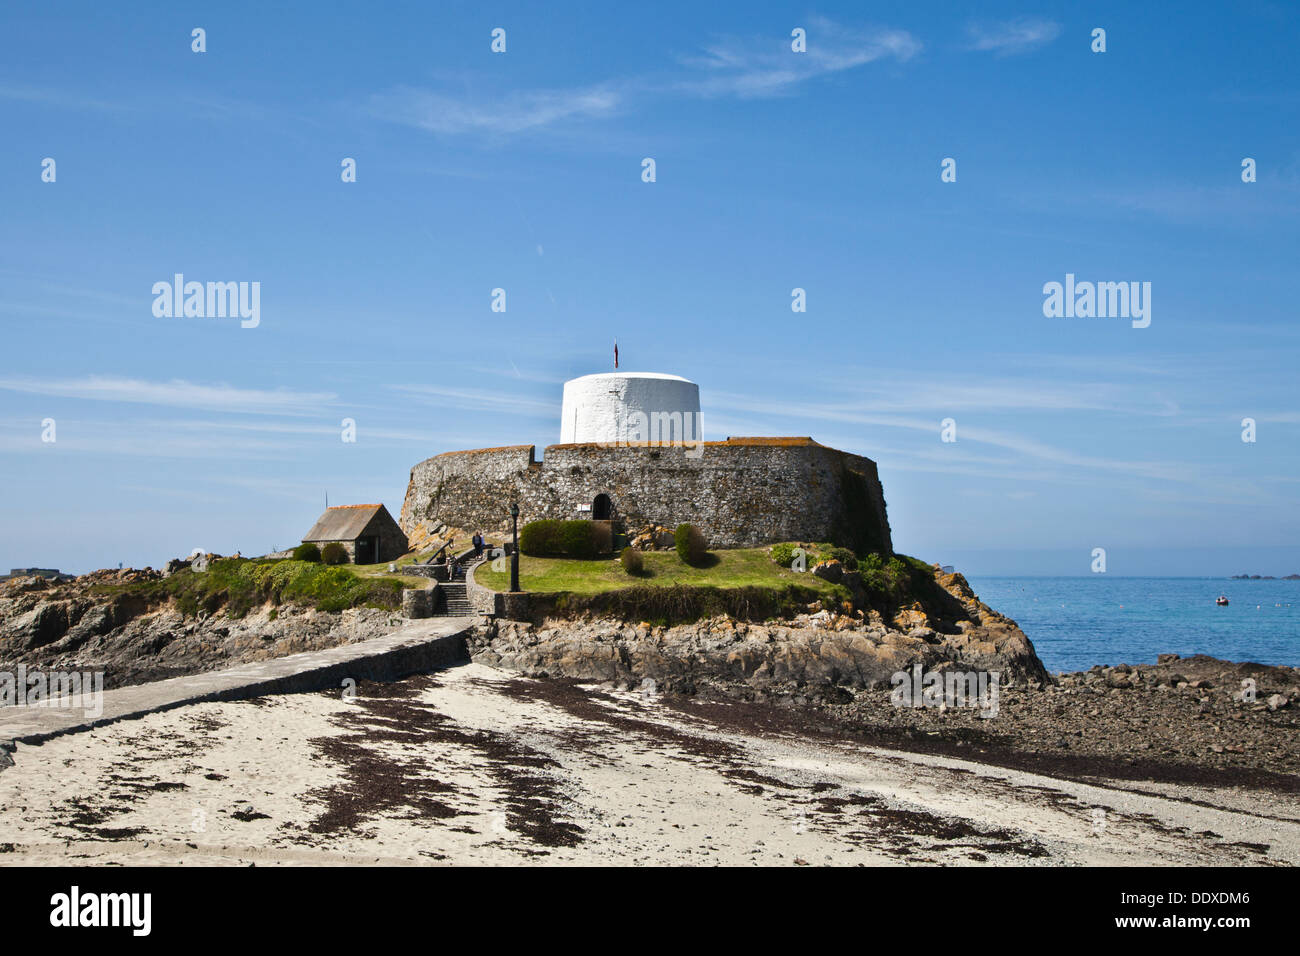 Fort Grey, World War II German defences and fortifications in Guernsey, Channel Islands, UK - Stock Image